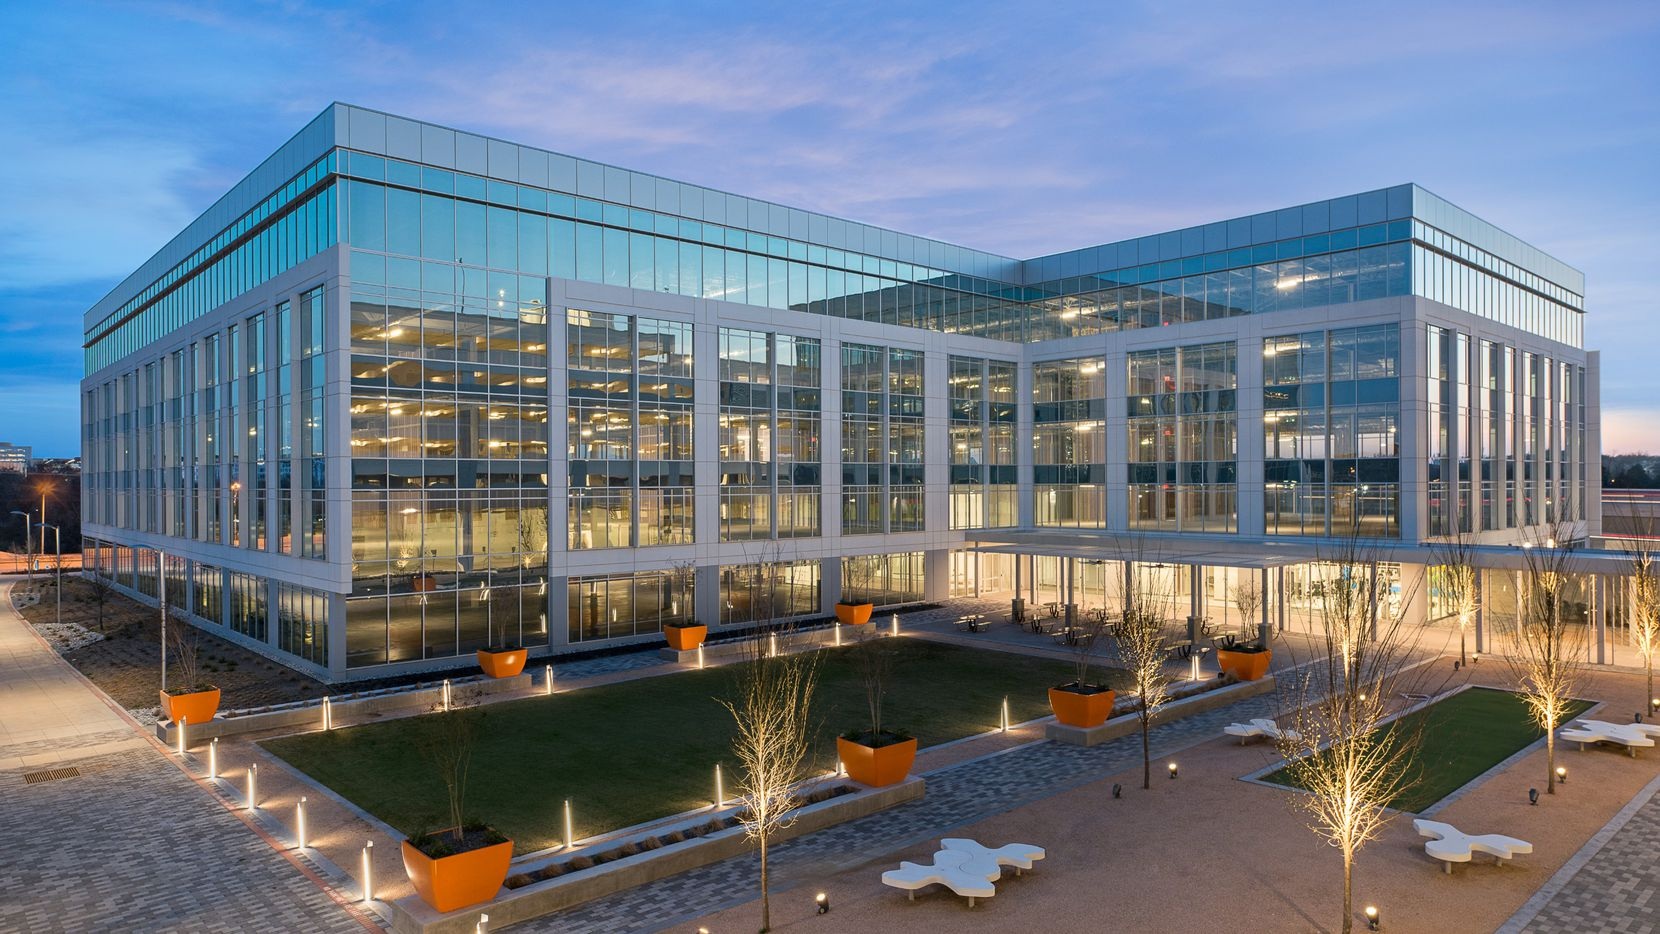 DXC Technology — an affiliate of Hewlett Packard — is moving its local office from the former Electronic Data Systems campus in Plano's Legacy business park to the new 3400 at CityLine building.